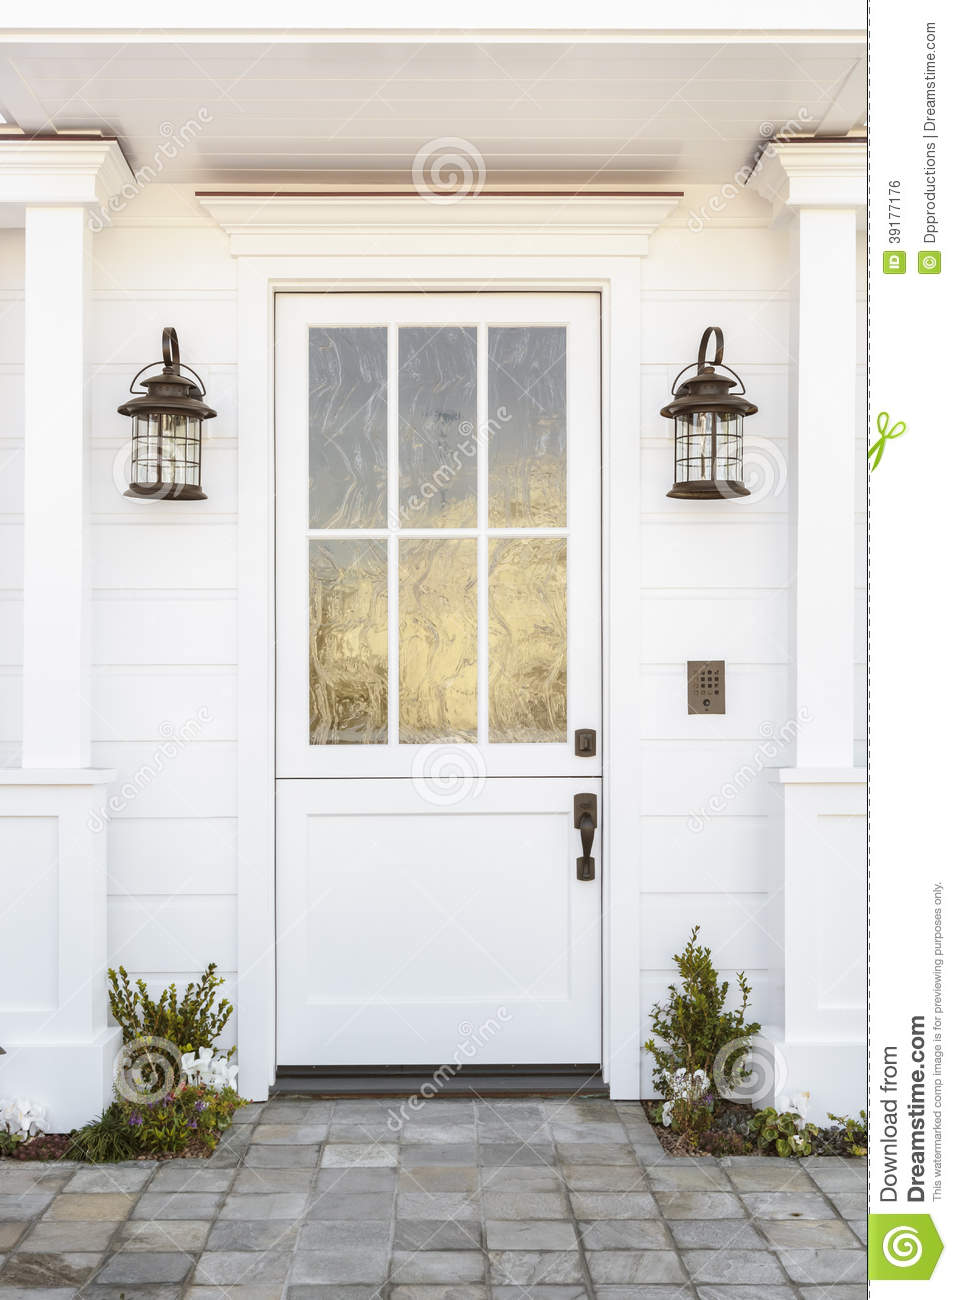 How To Paint A Outside Steel Door